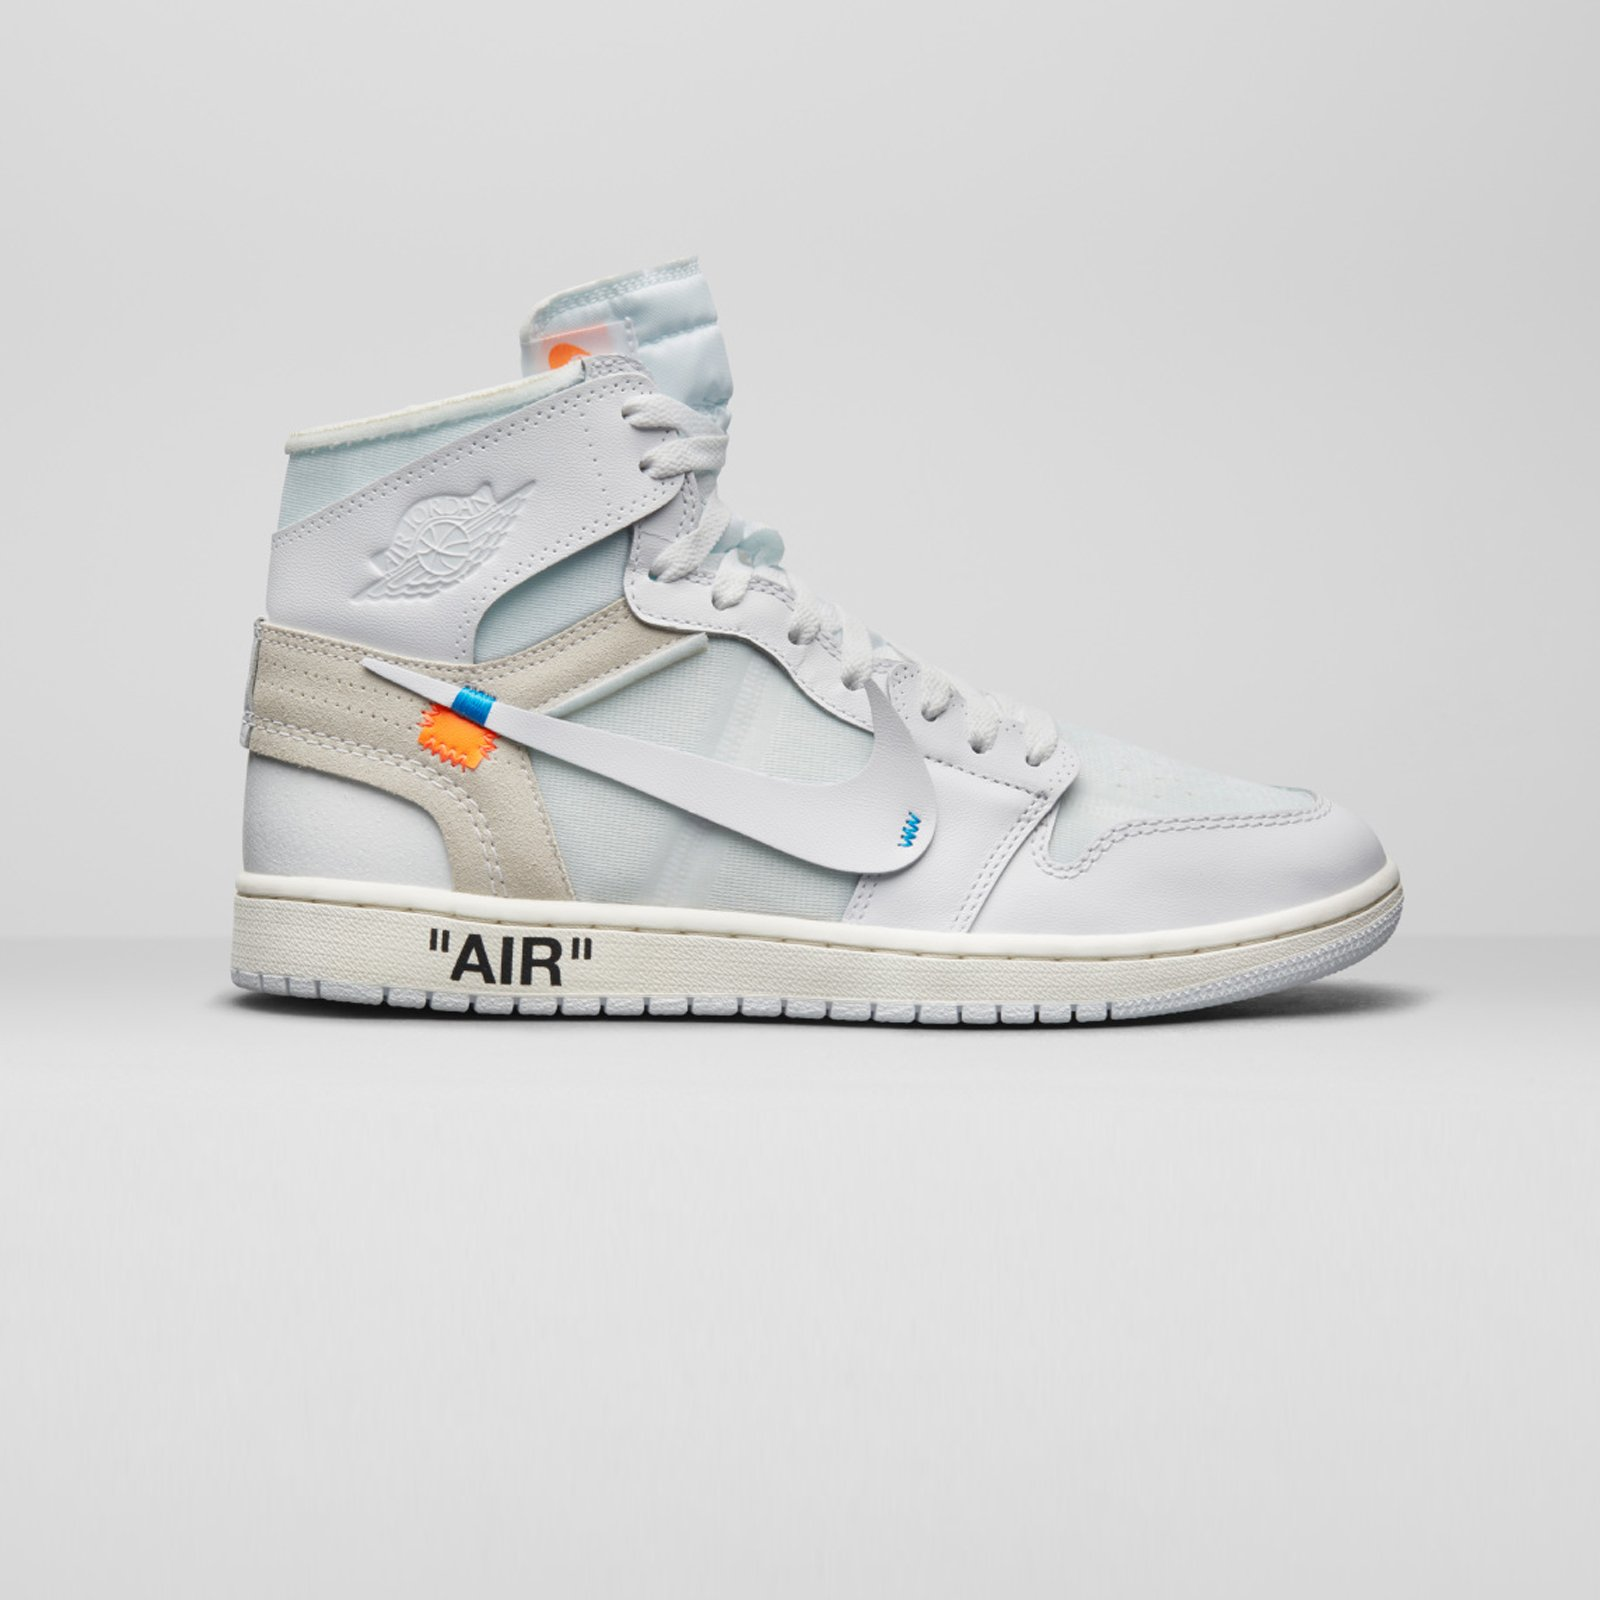 super popular 17c93 8356e Jordan Brand Air Jordan 1 x OFF-WHITE NRG